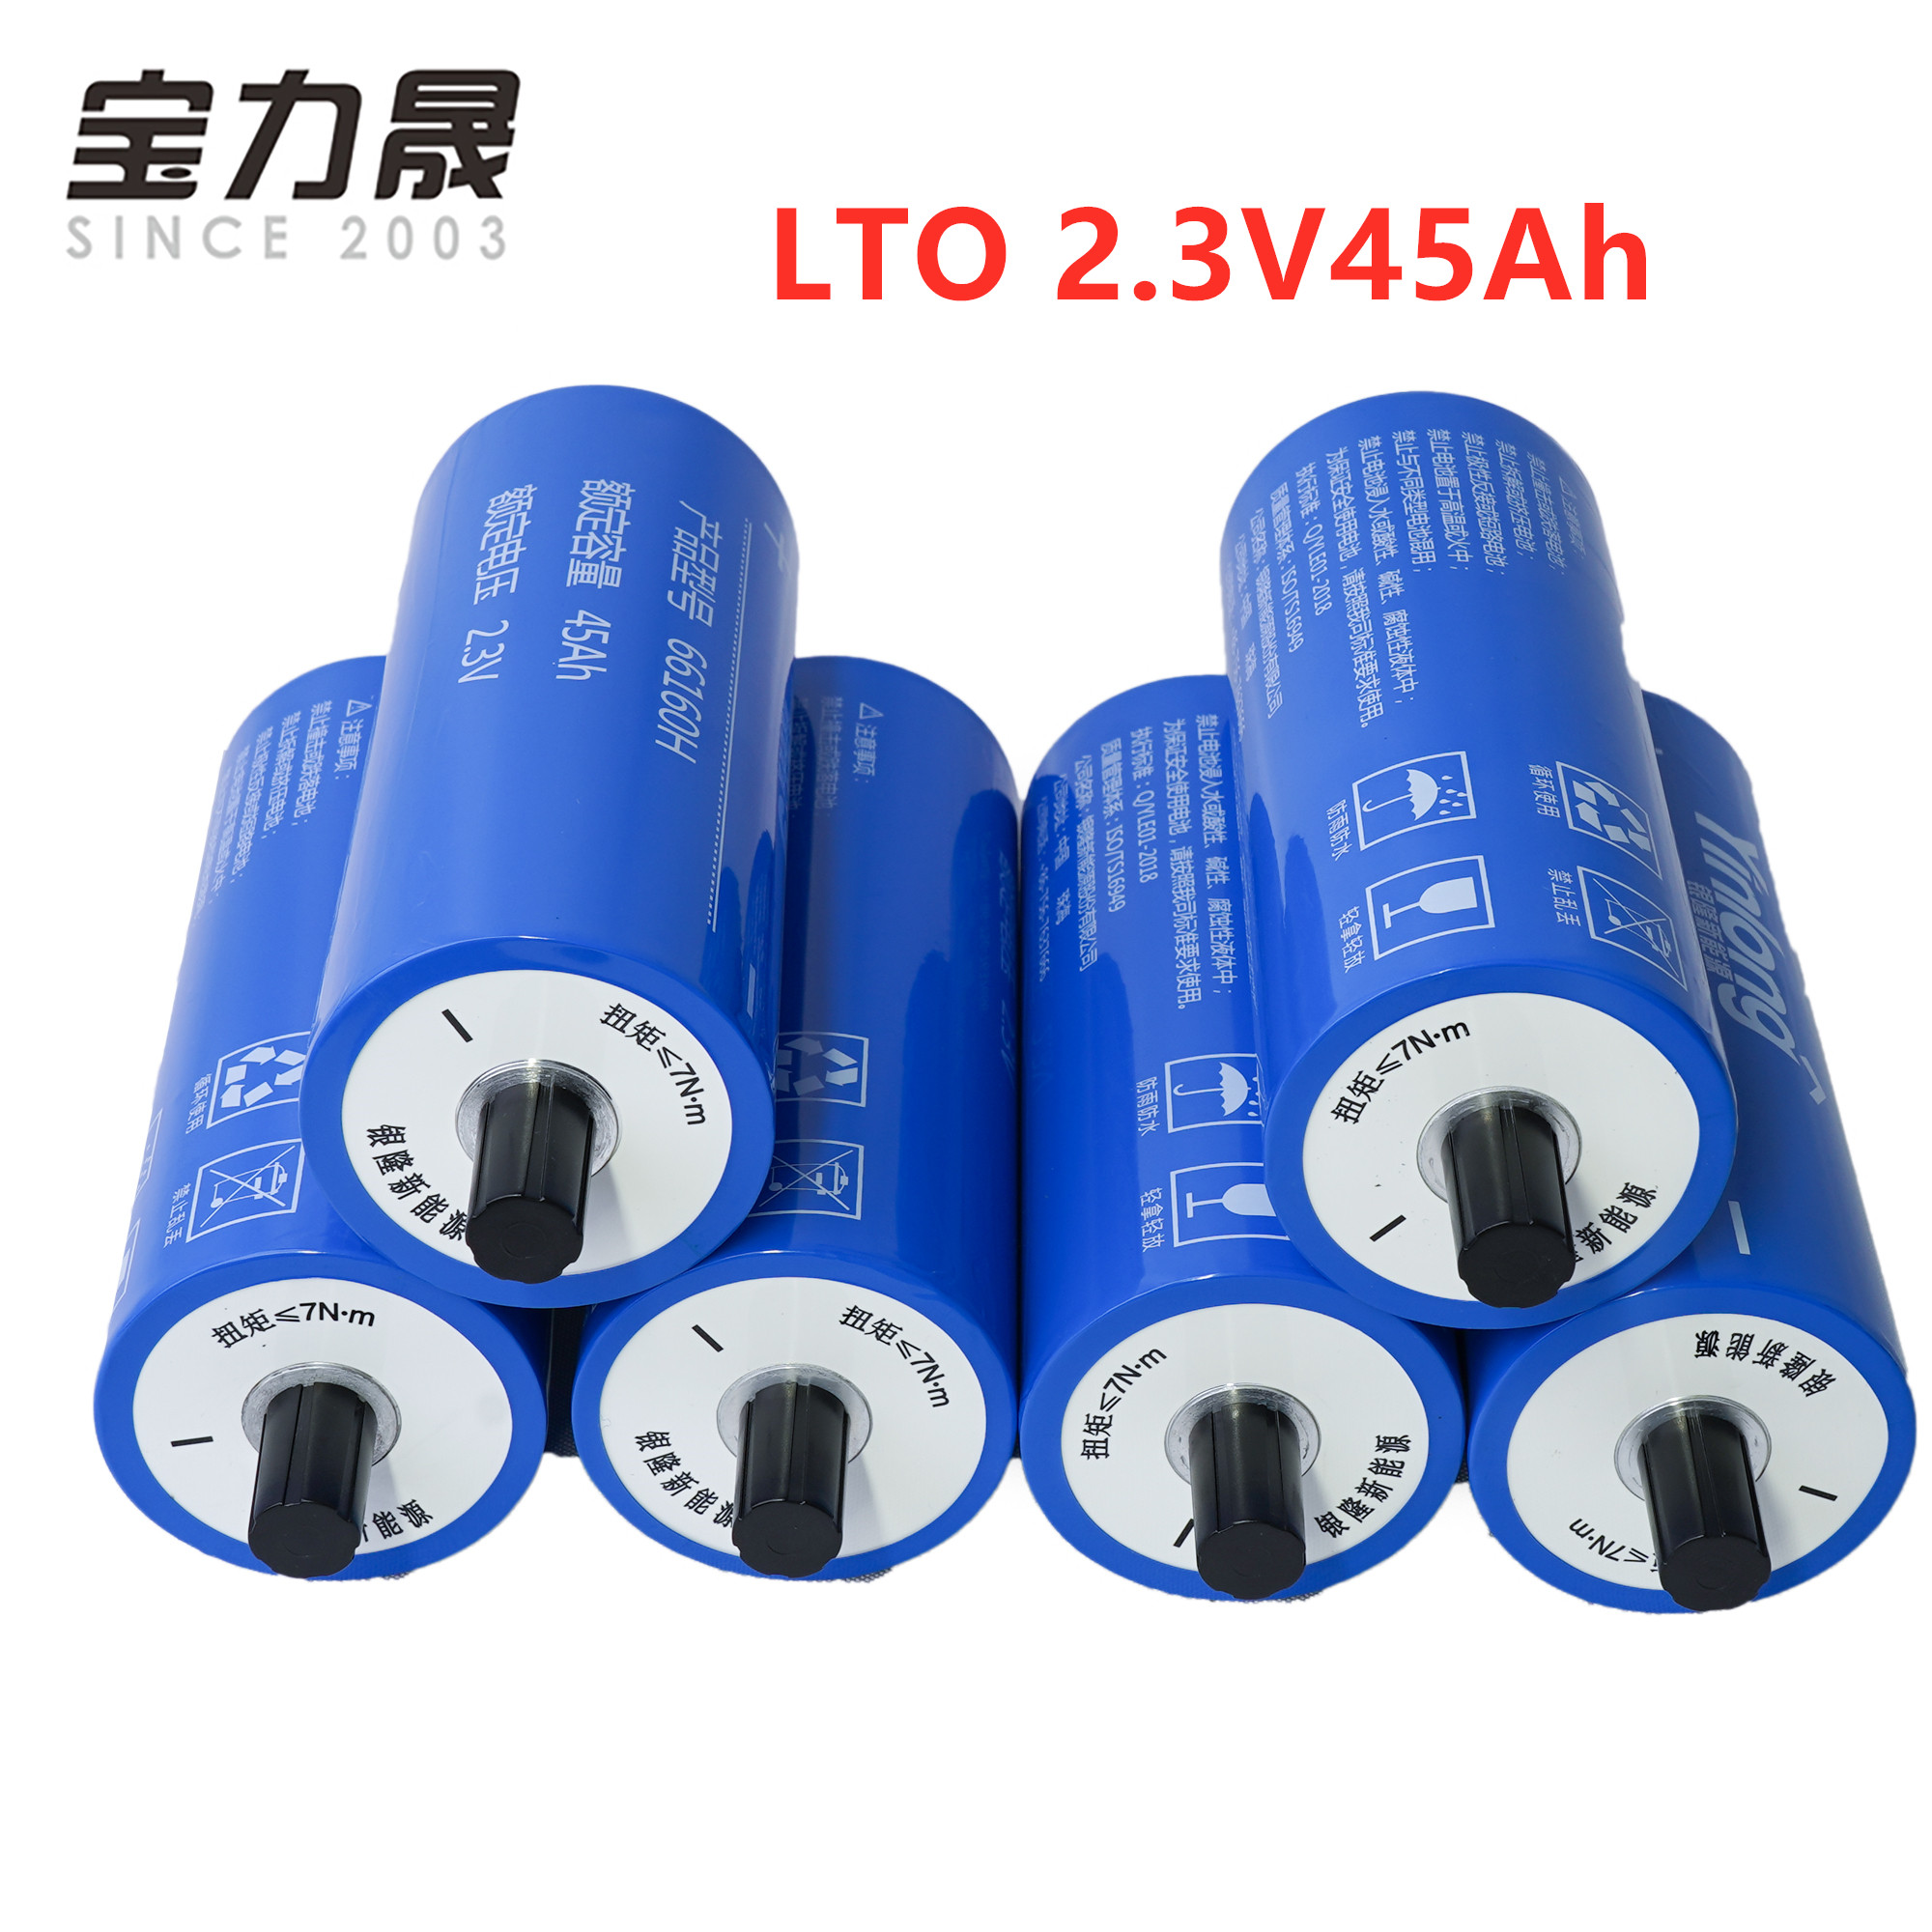 2.3V 2.4V LTO 45AH 6S 12V45AH original YINLONG 66160H Lithium Titanate Battery Cell 2.4v 10C 450A for 12v 14.4v EV golf cart(China)